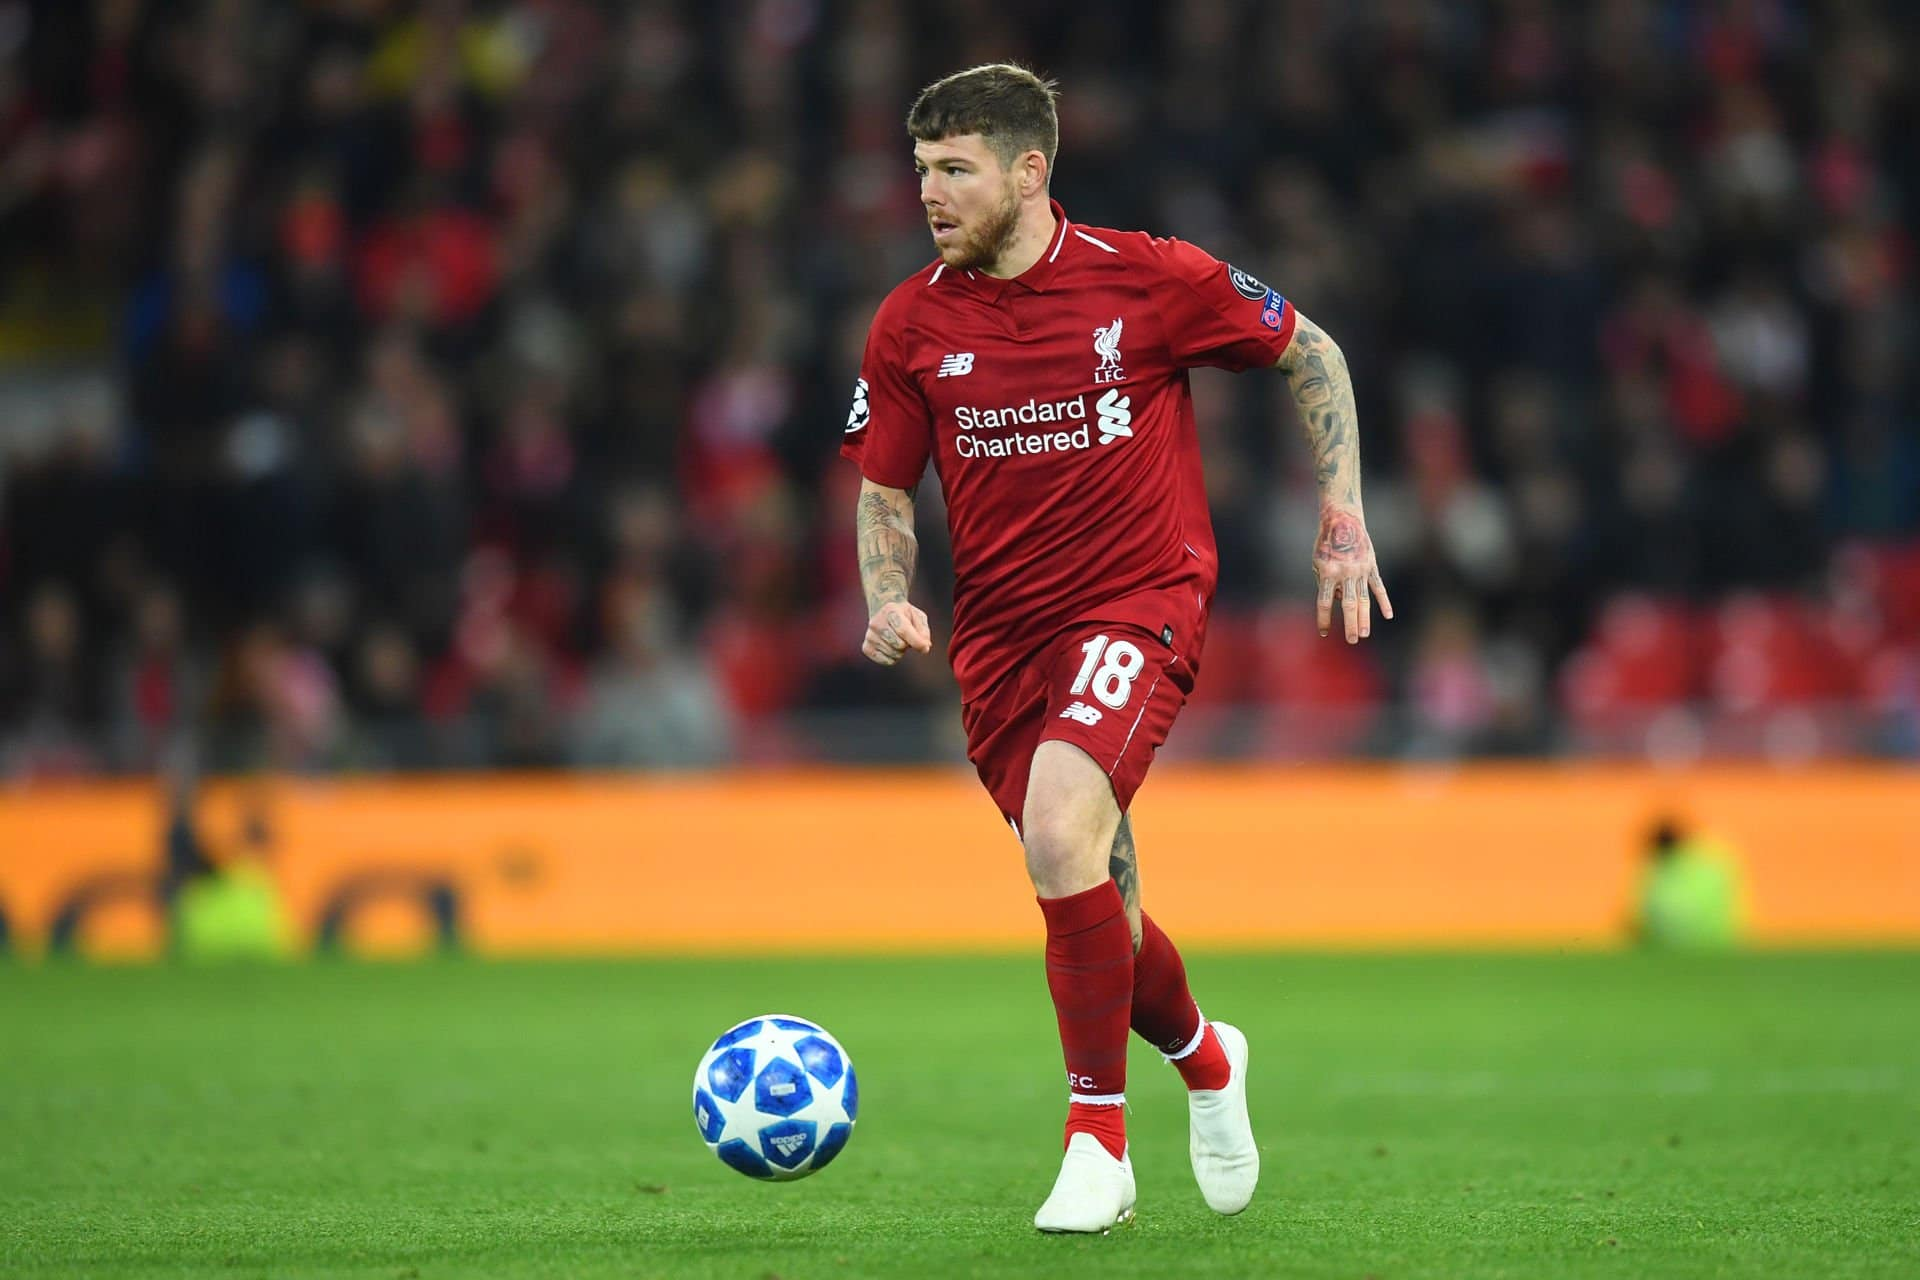 alberto-moreno-shares-what-fabinho-has-suggested-him-about-villarreal-v-manchester-united.jpg